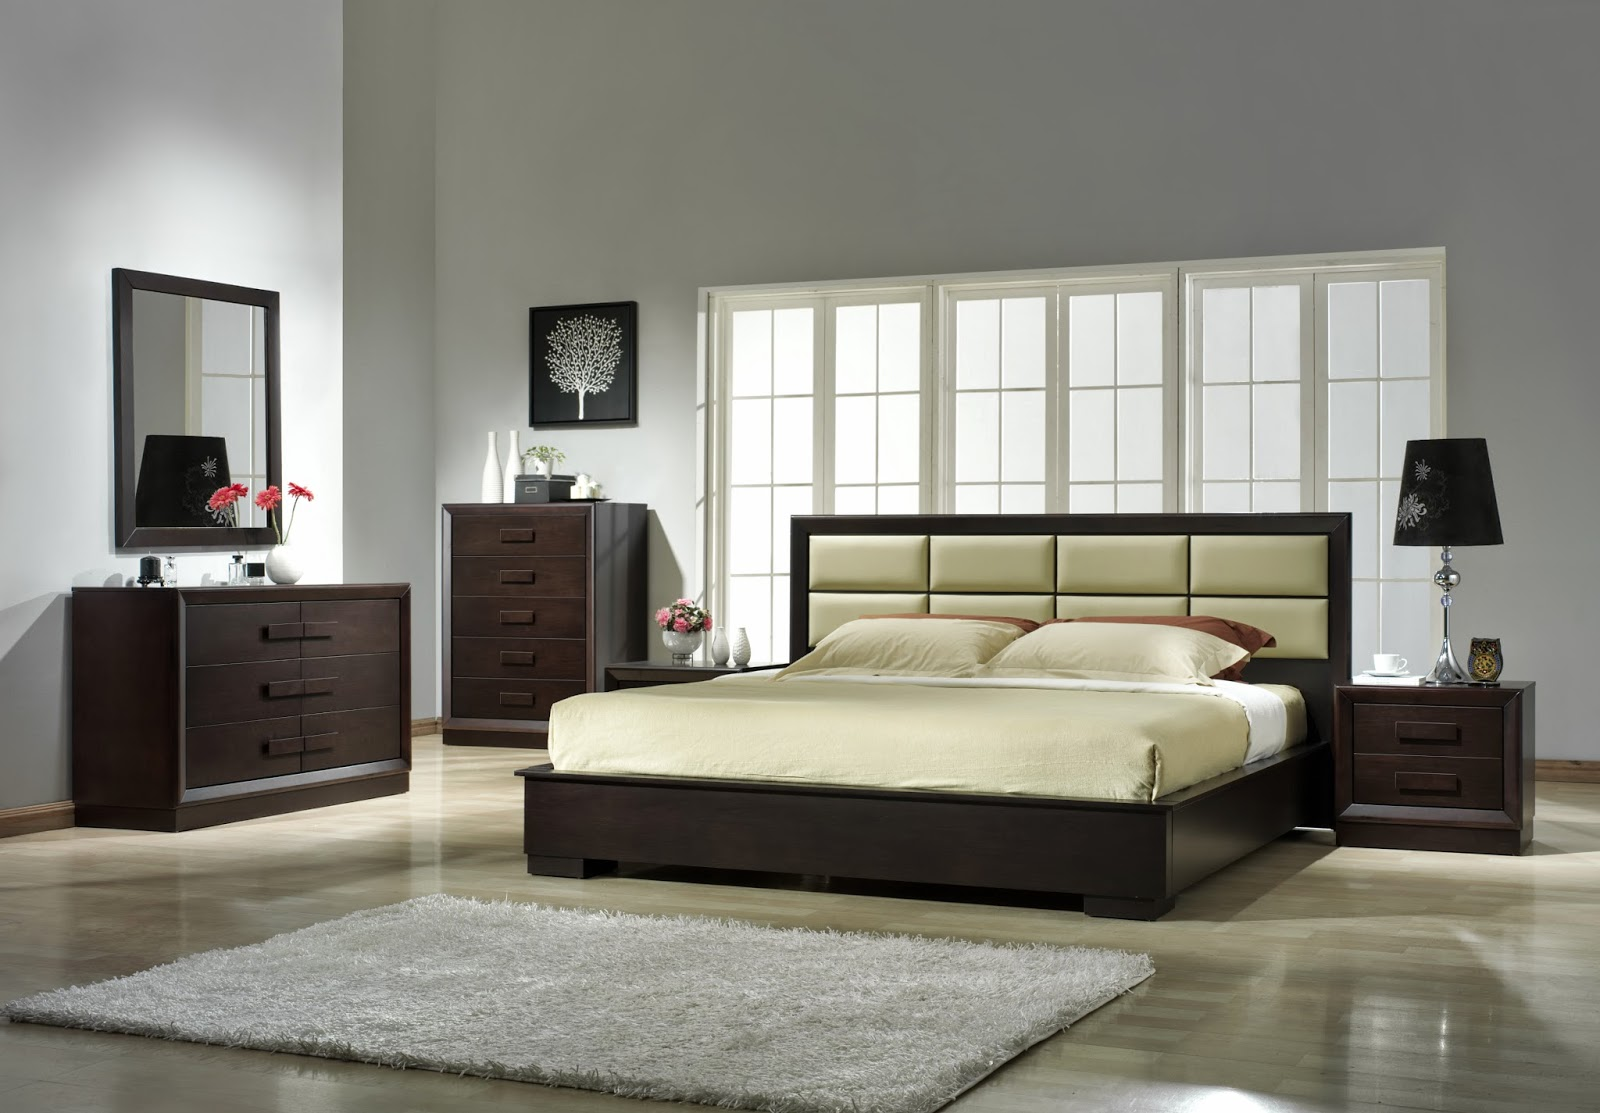 Cheapest bedroom furniture popular interior house ideas for Inexpensive bedroom furniture